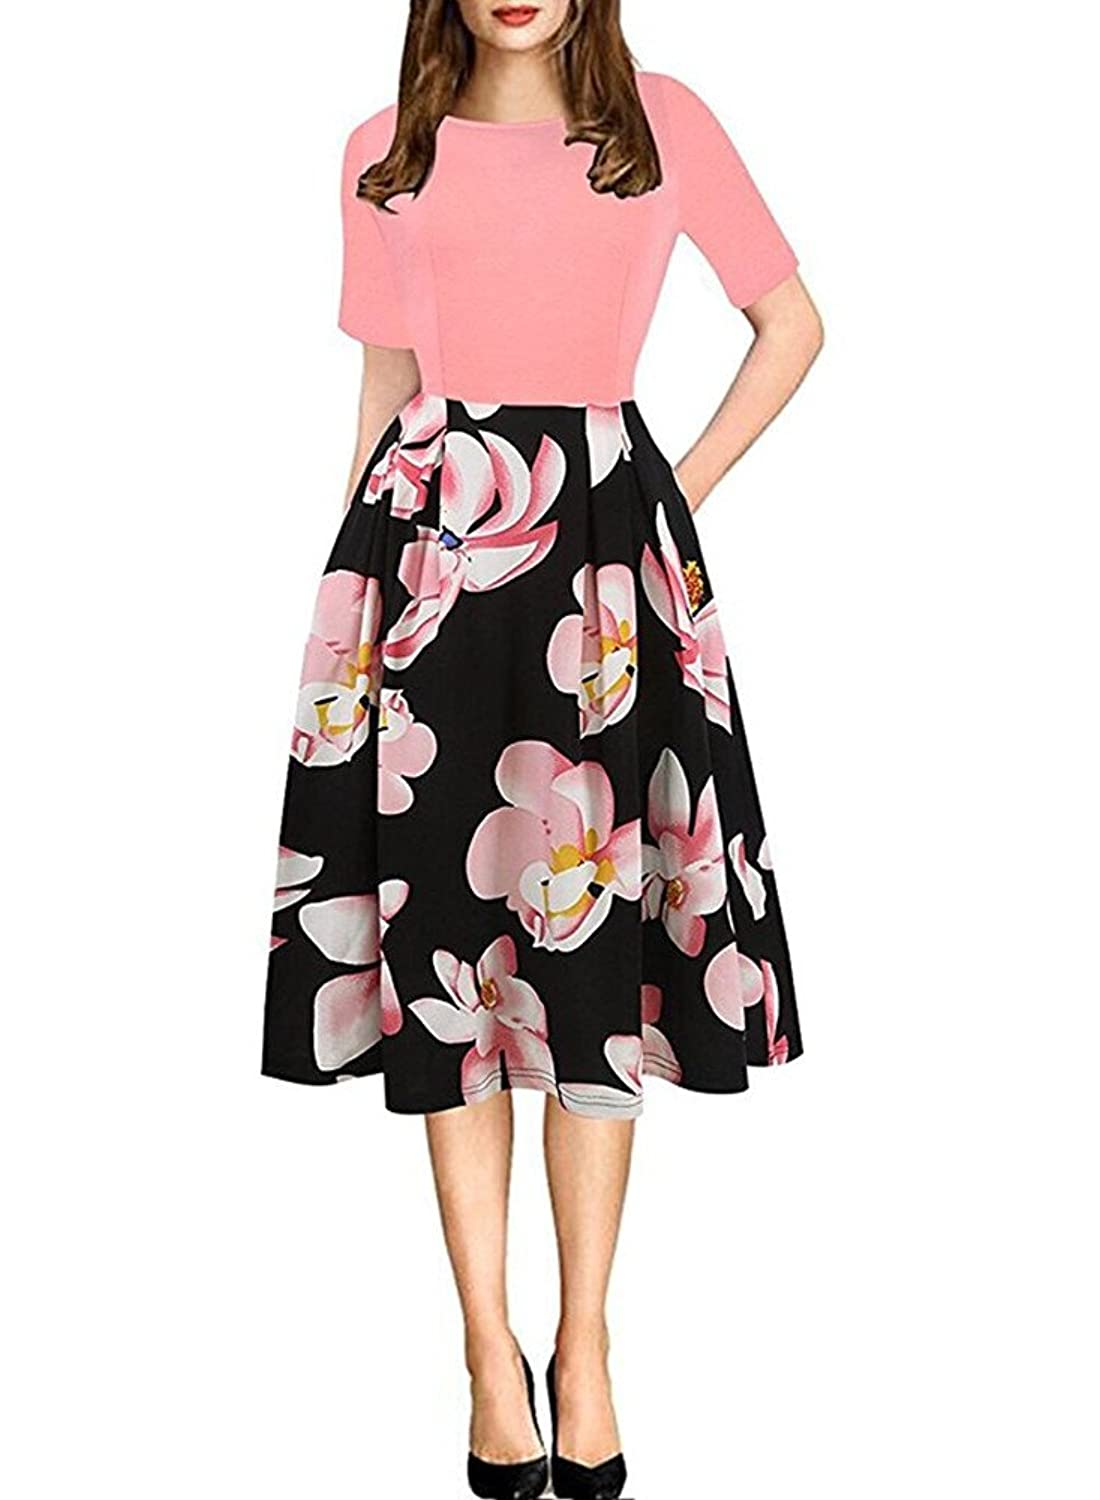 7a6a2e9433c BeneGreat Women s Vintage Floral Flare Patchwork Puffy Swing Cocktail Party  Dress with Pockets